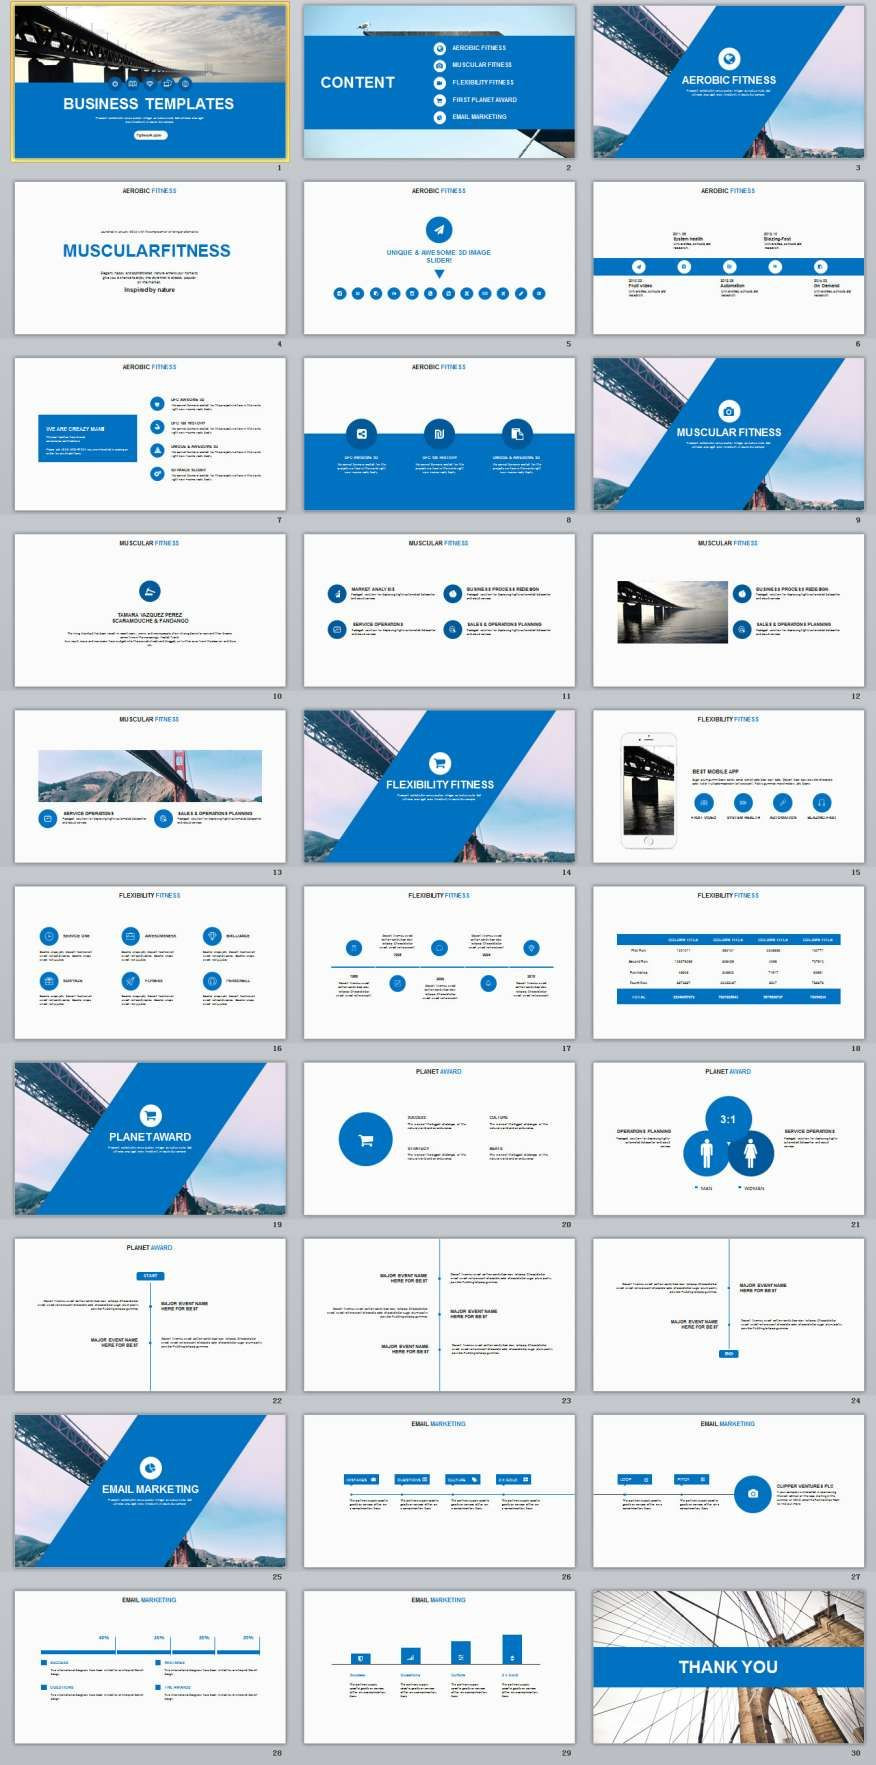 30 blue annual report presentation powerpoint templates 30 blue annual report presentation powerpoint templates powerpoint templates presentation animation toneelgroepblik Image collections